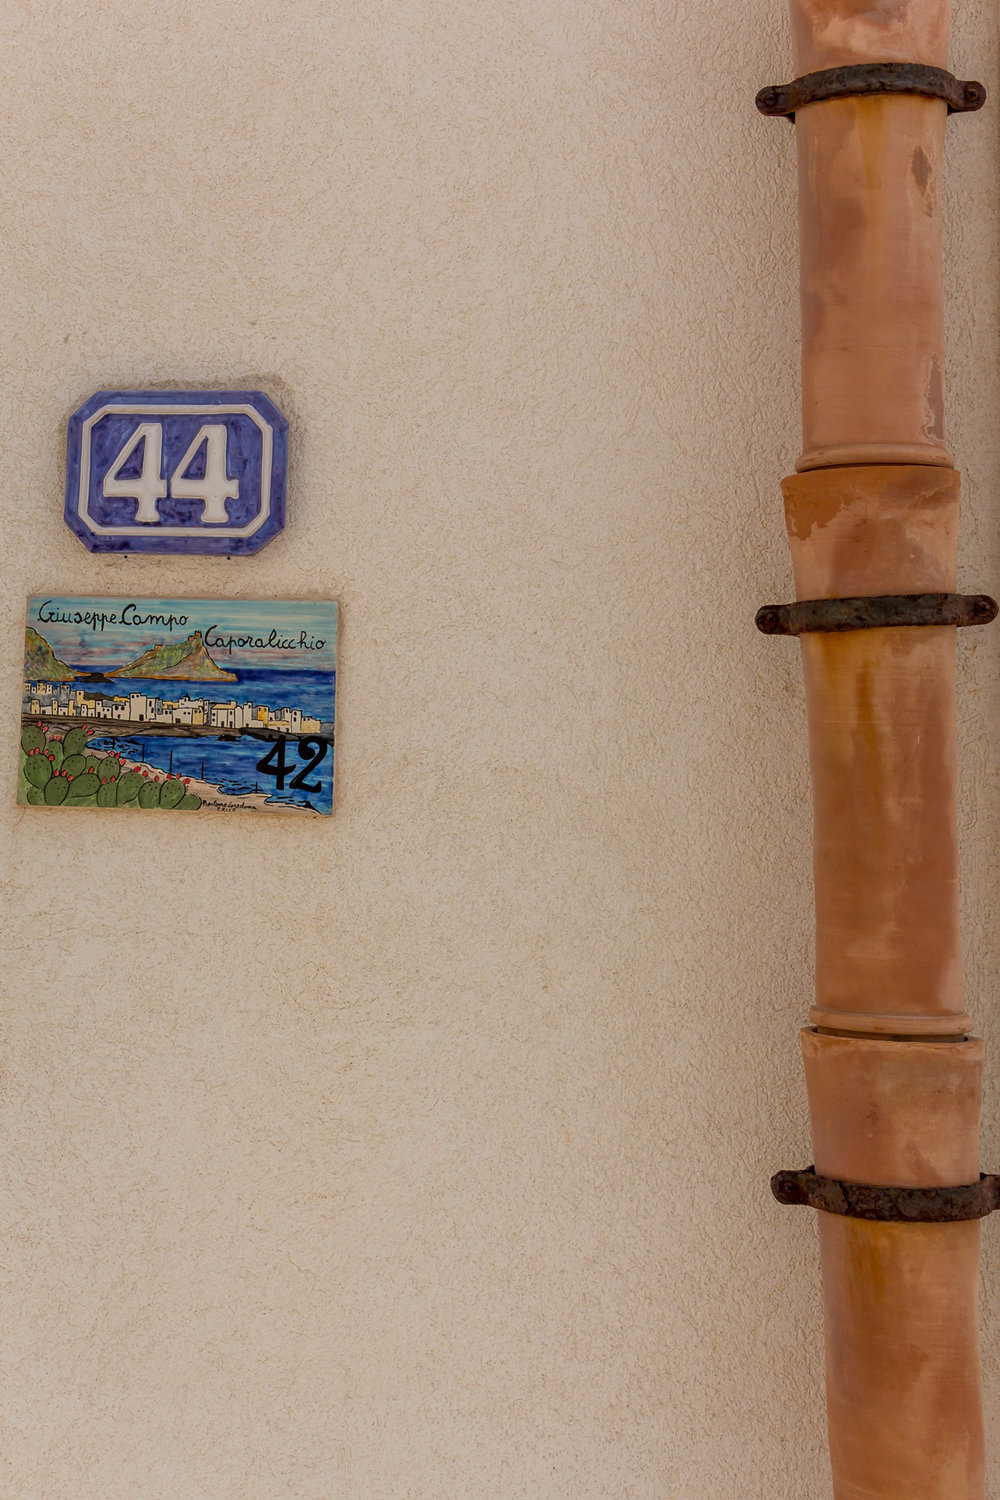 House numbers in Marettimo